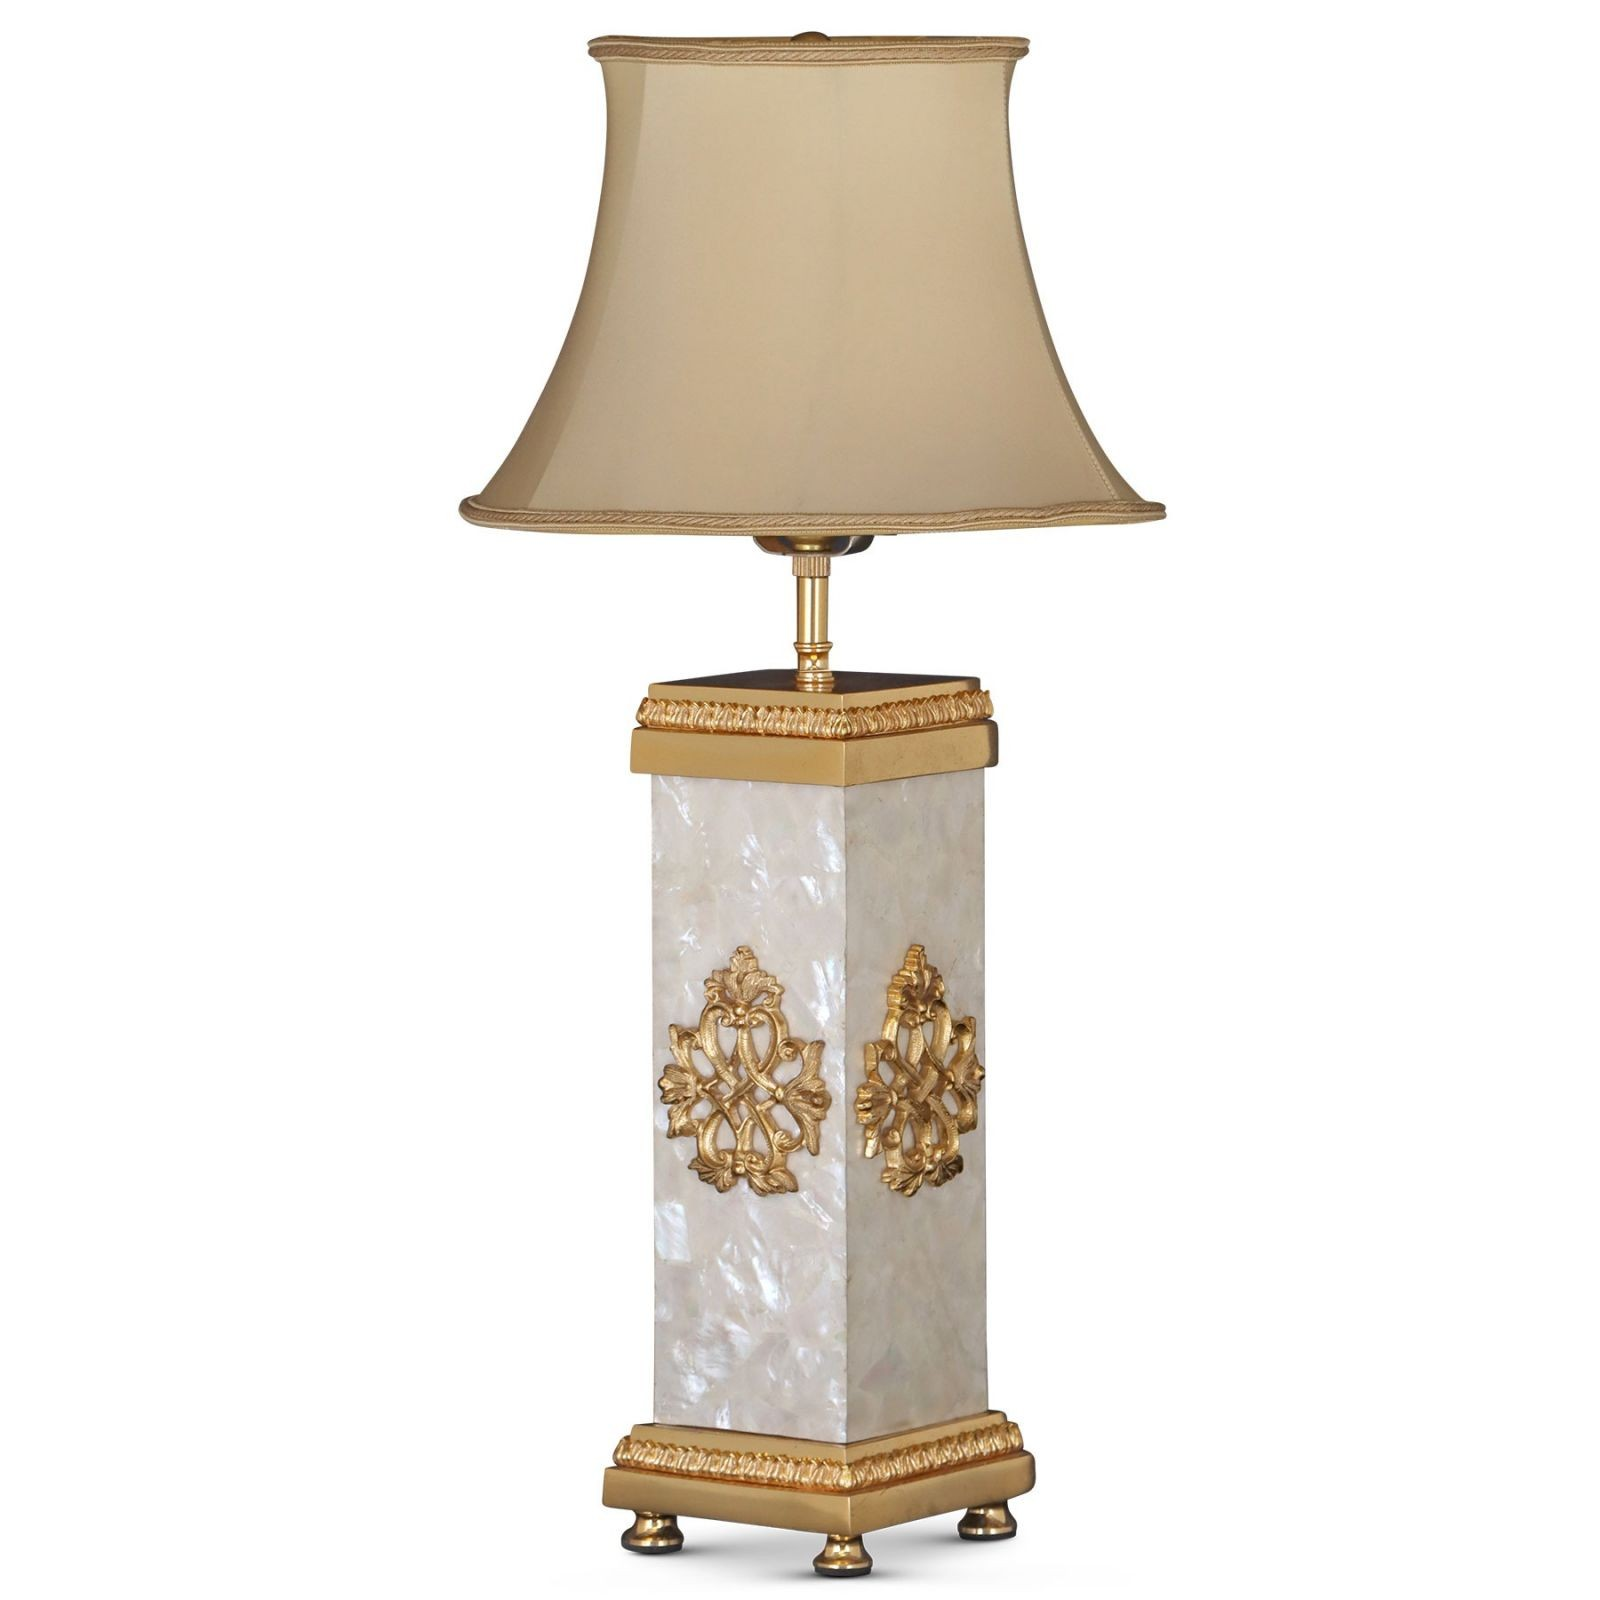 Empire style bronze mounted lamp